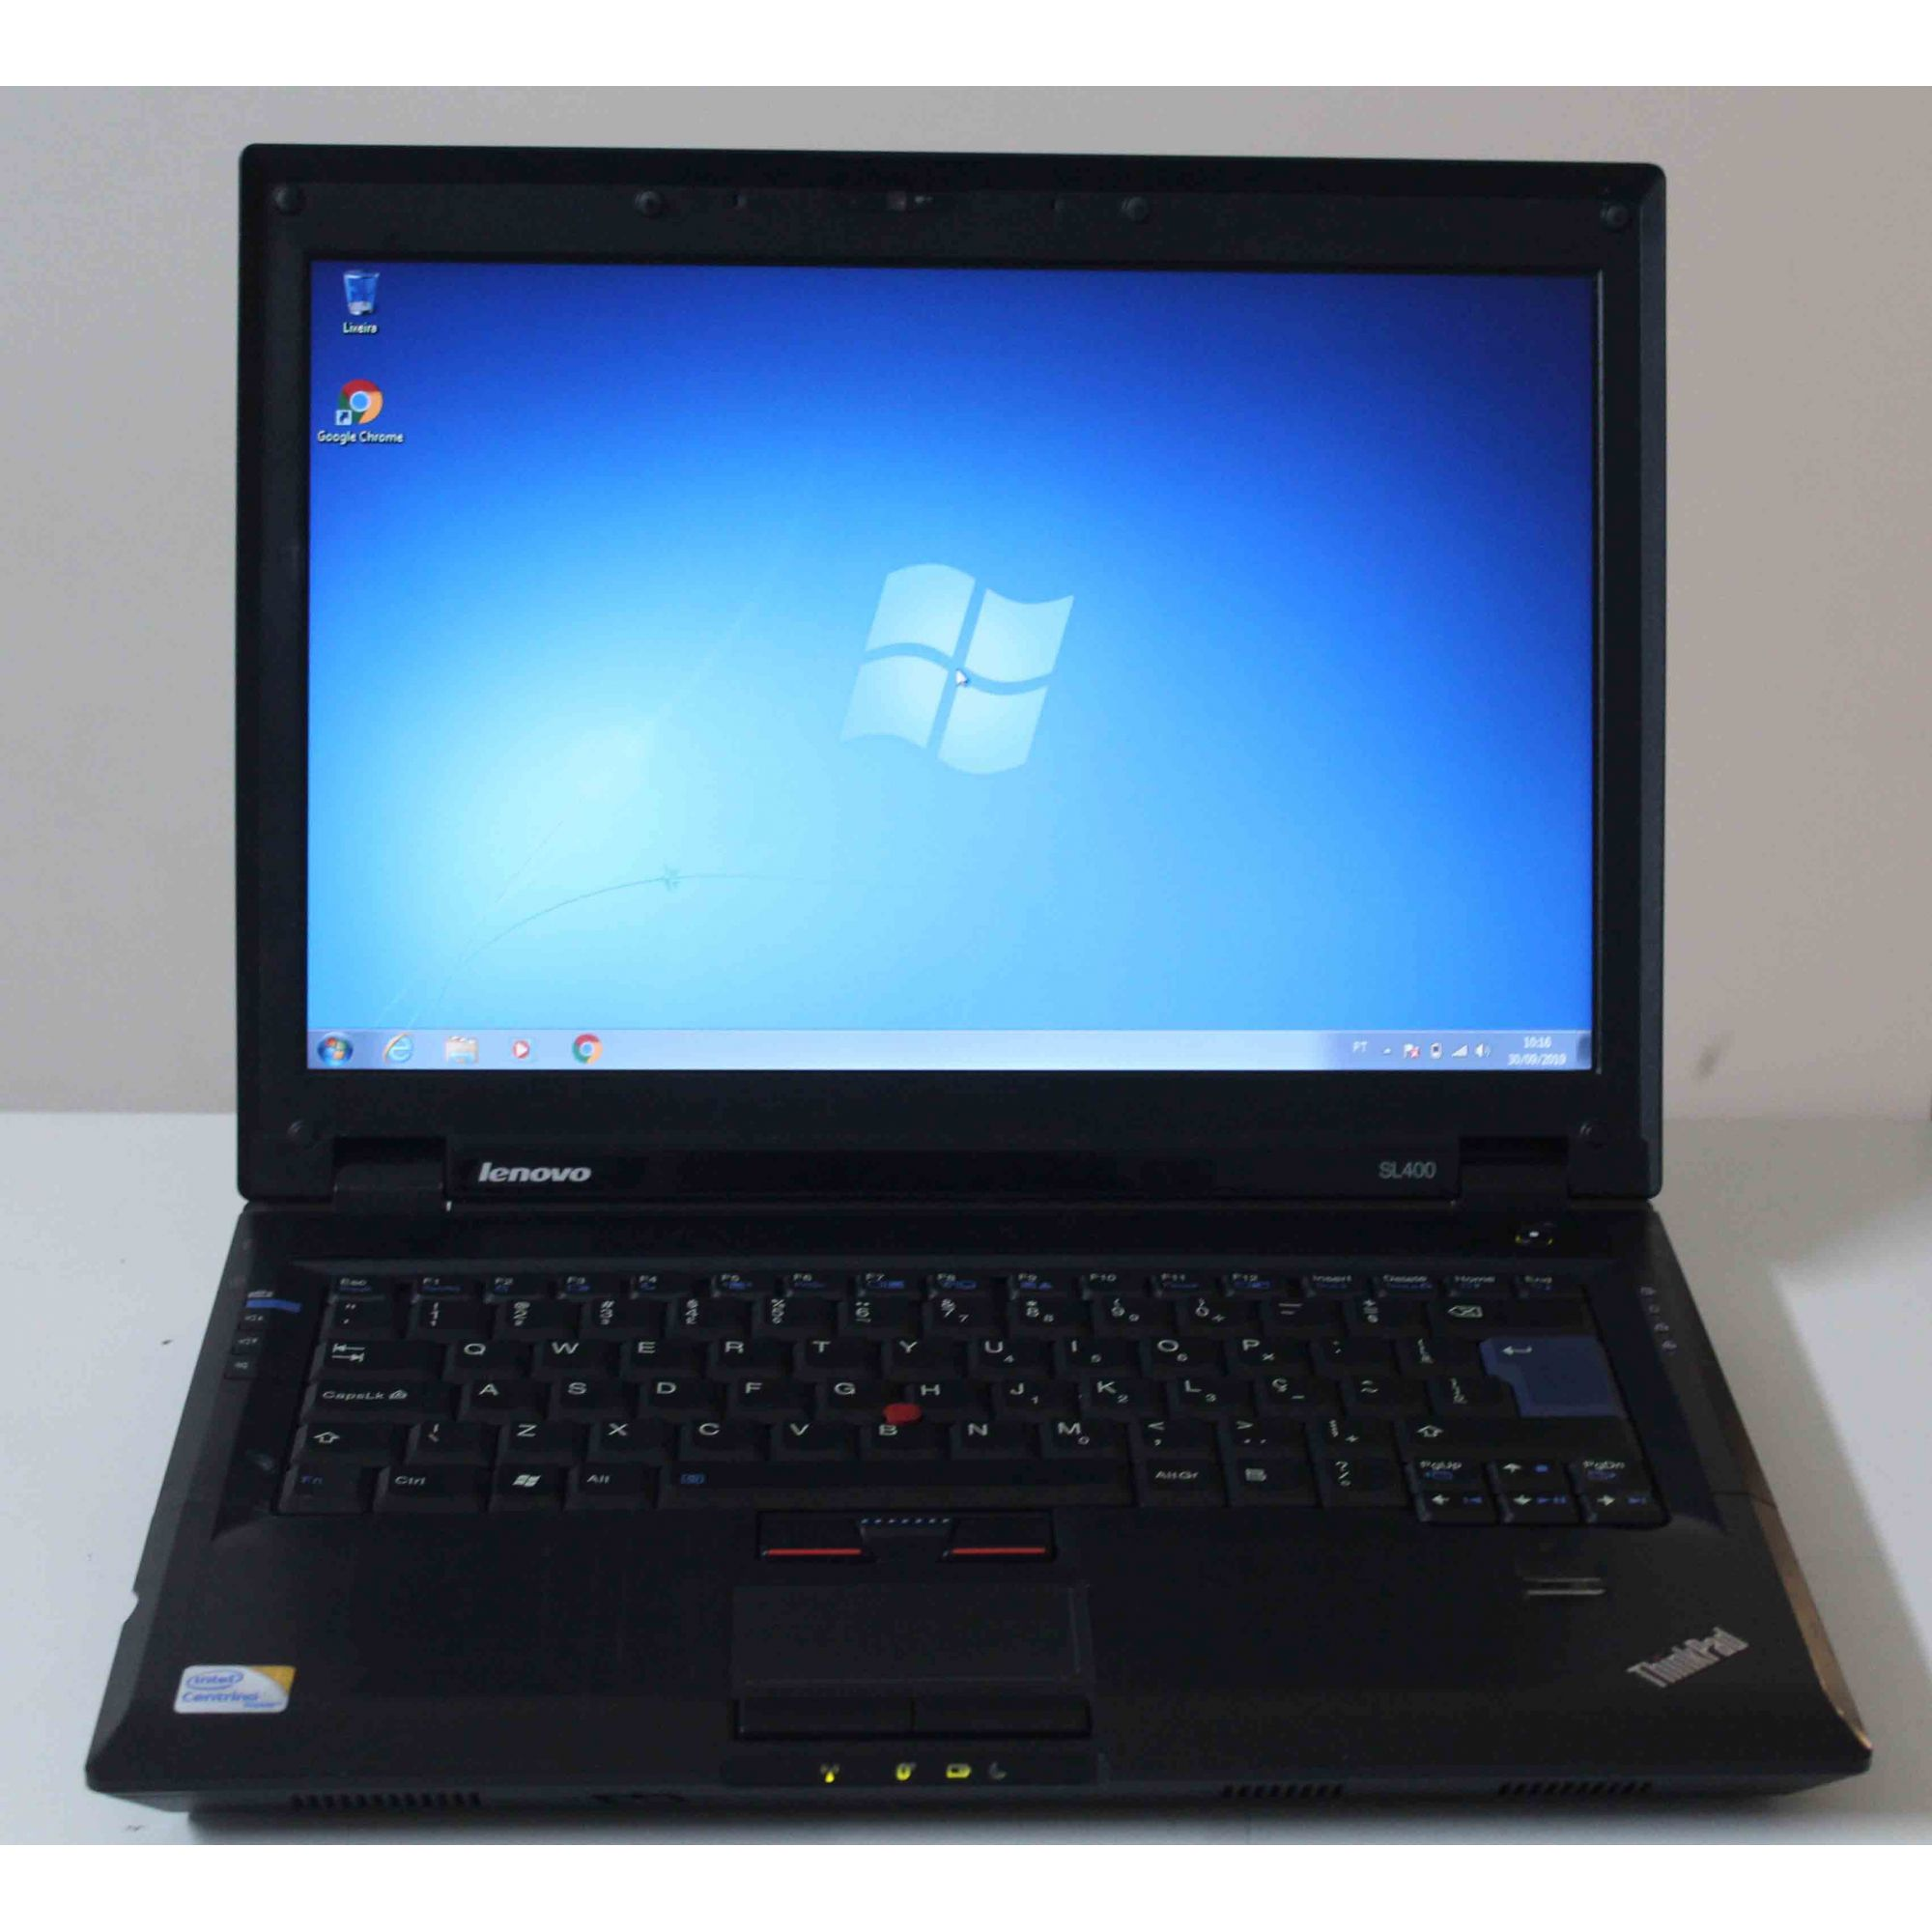 "Notebook Lenovo Thinkpad SL400 14.1"" Intel Core 2 Duo 2.27GHz 2GB HD-160GB"